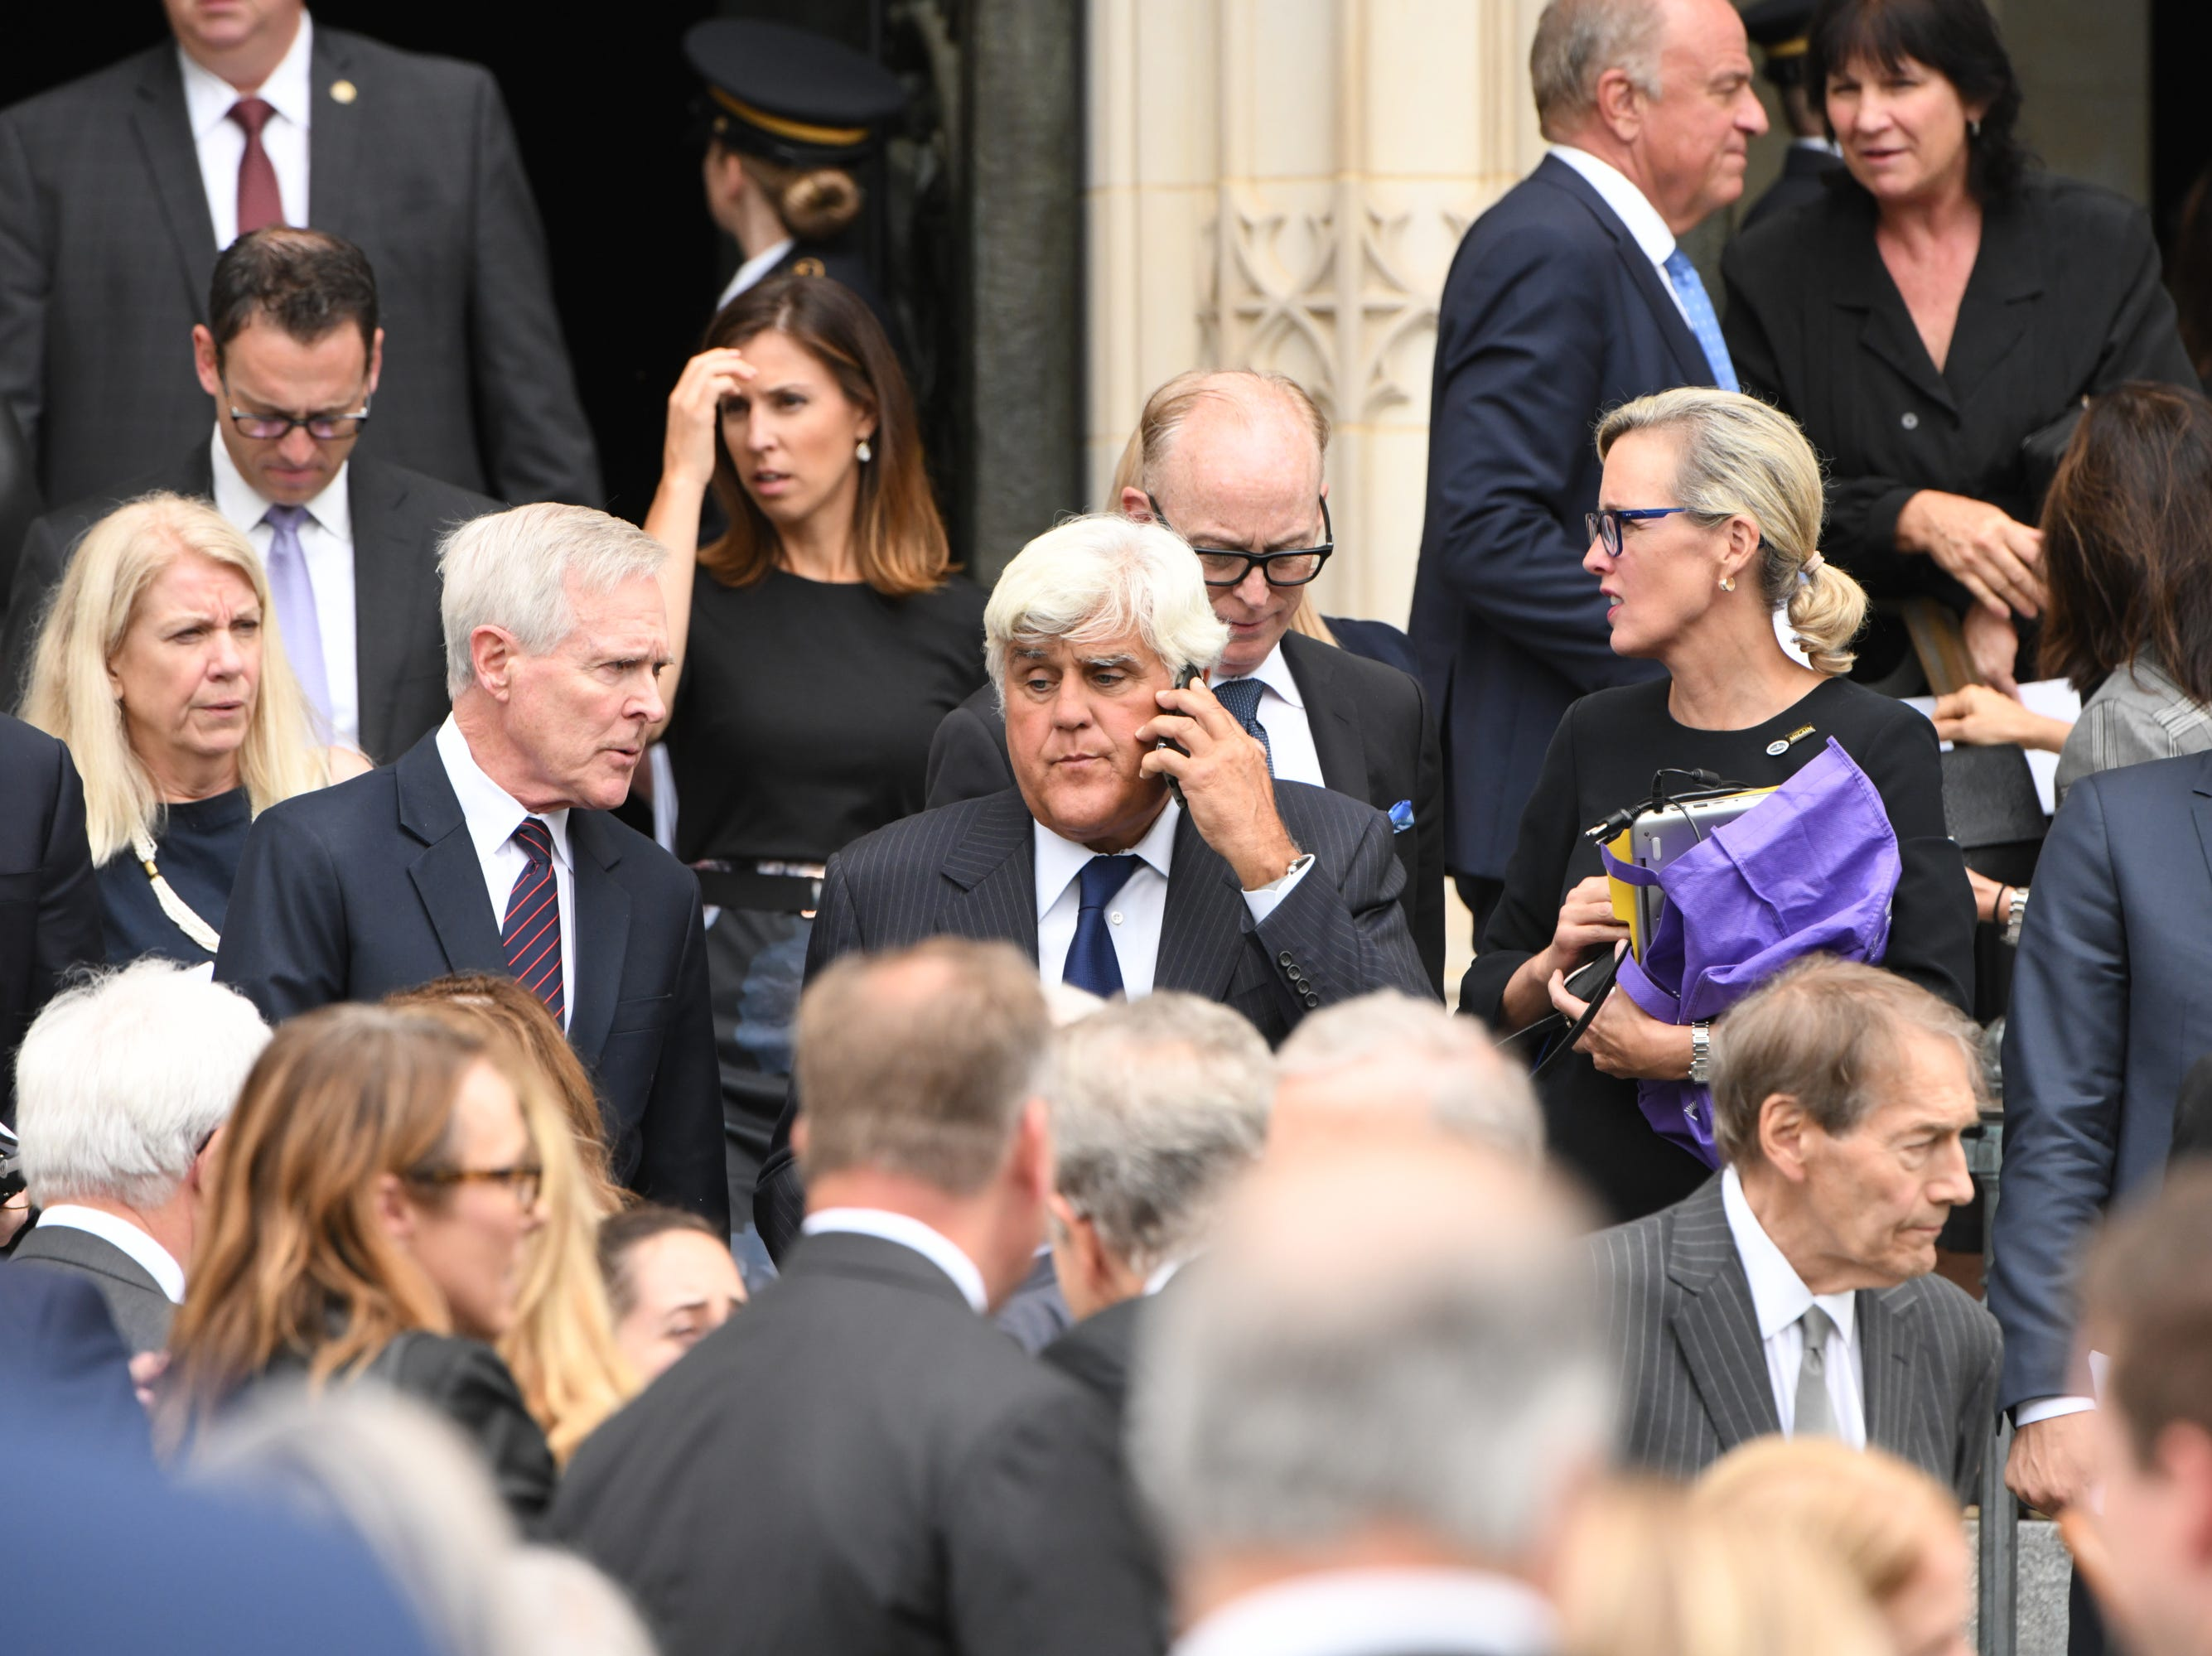 9/1/18 12:48:42 PM -- Washington, DC, U.S.A  -- Jay Leno makes a phone call as he leaves the memorial service for John McCain at the National Cathedral in Washington on Sept. 1, 2018. Sen. McCain died on Aug. 25. --    Photo by Jasper Colt, USA TODAY Staff